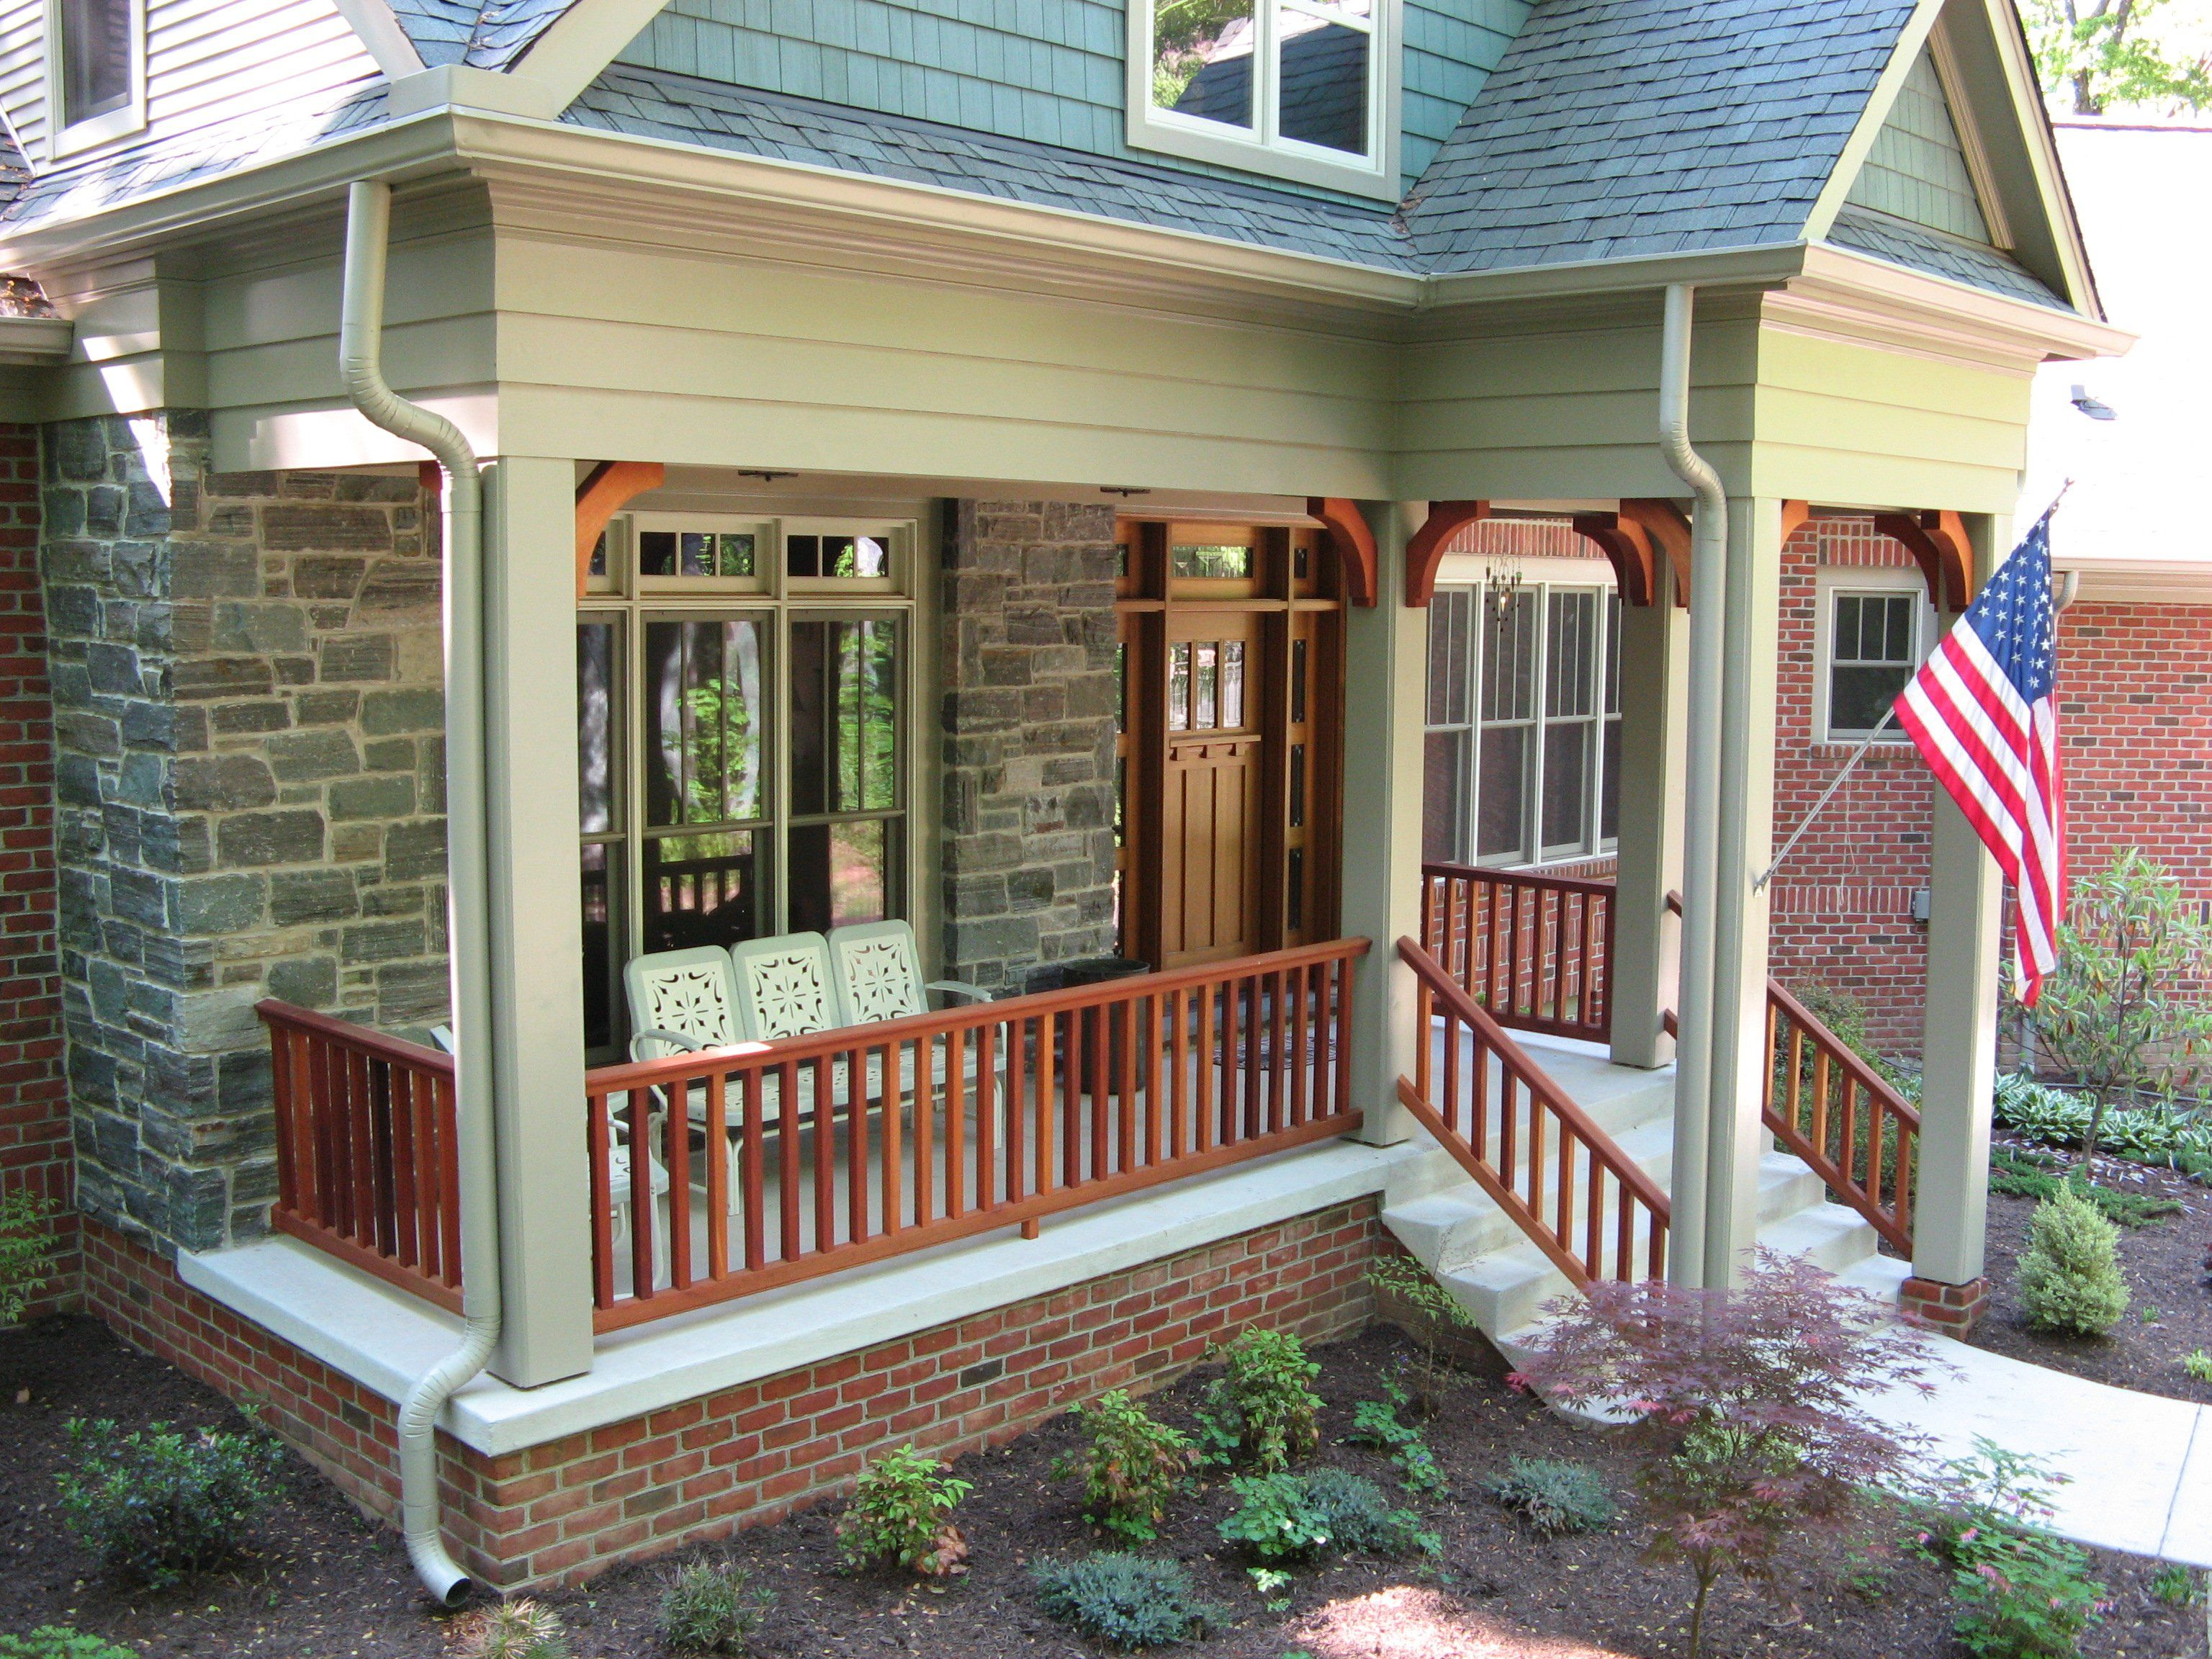 Exterior additions llc indian trail nc 28079 angies list - Download